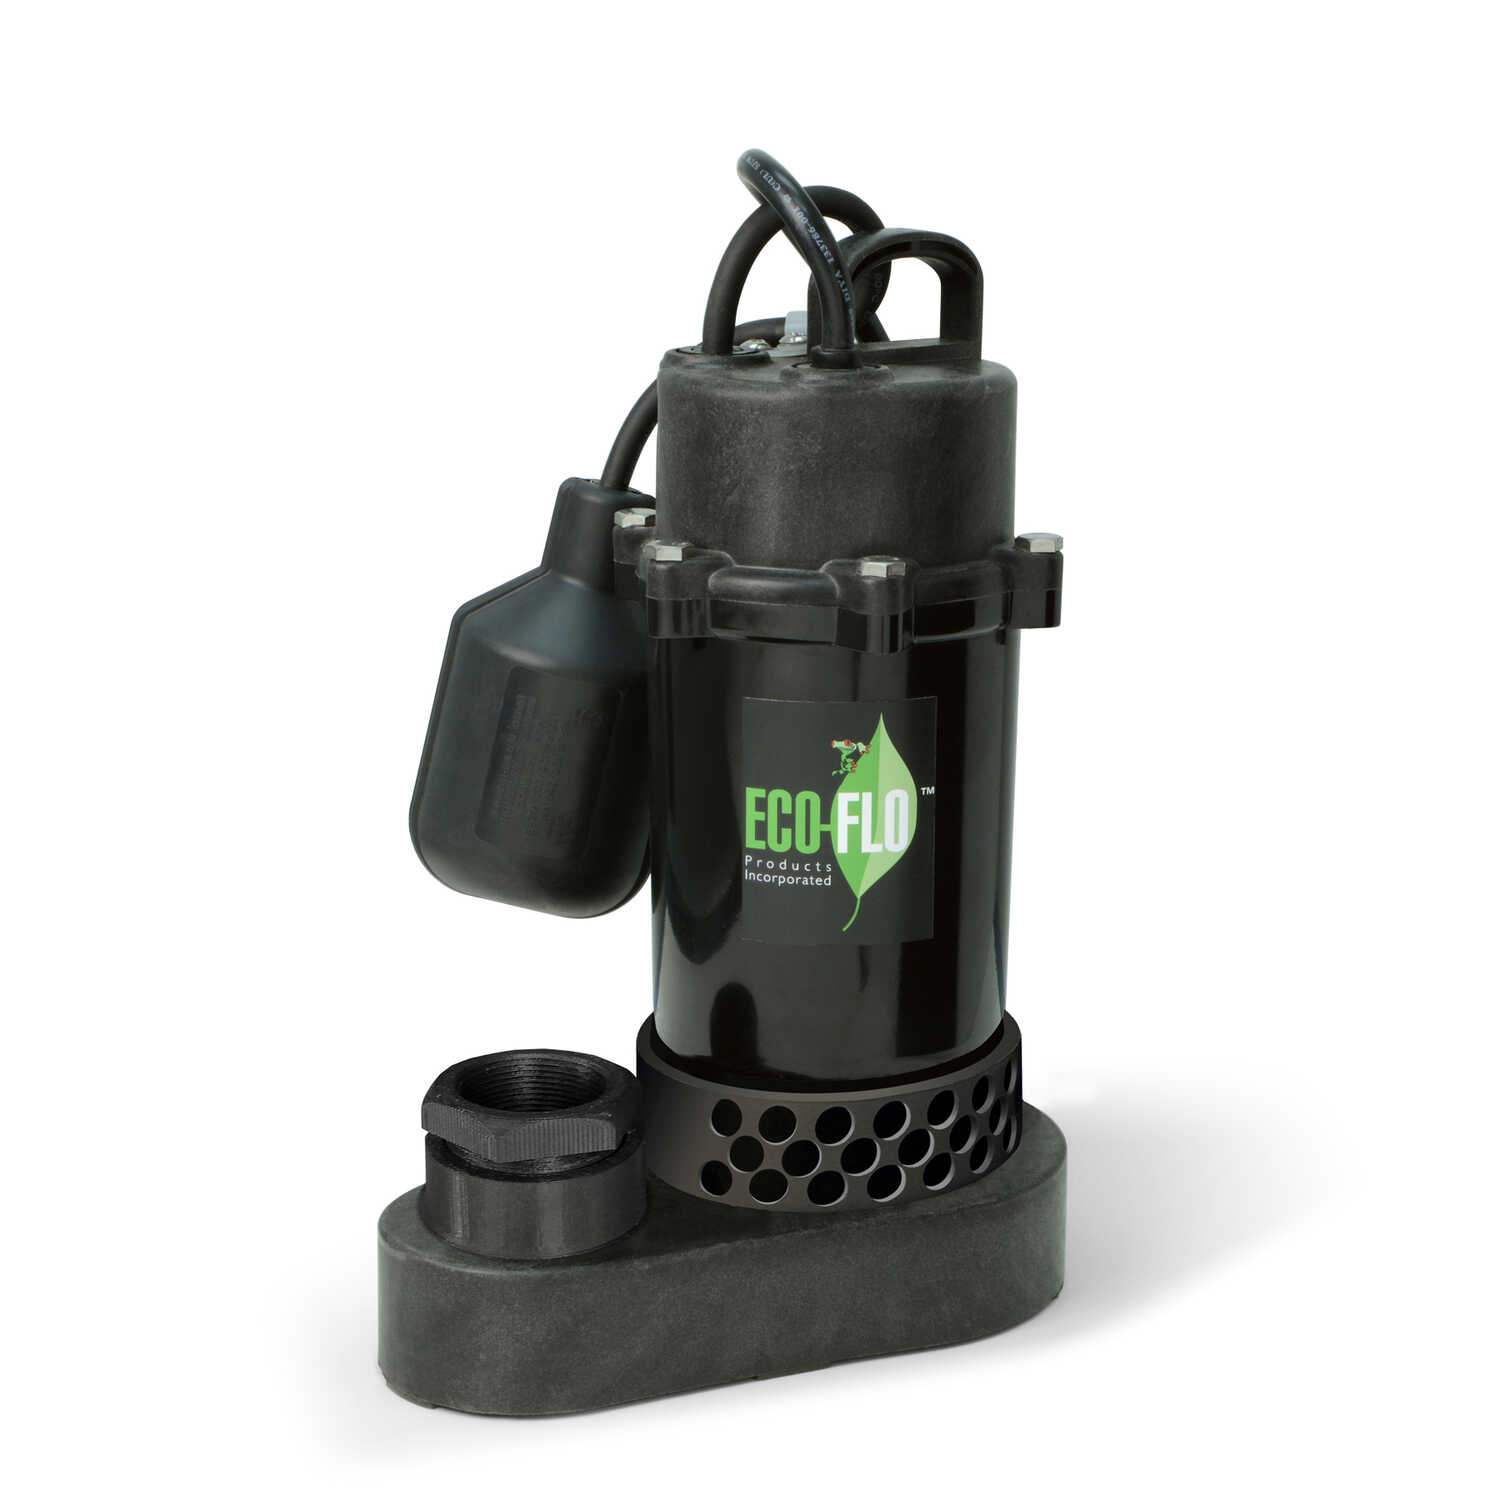 Ecoflo  1/3 hp 3600 gph Aluminum  Submersible Sump Pump